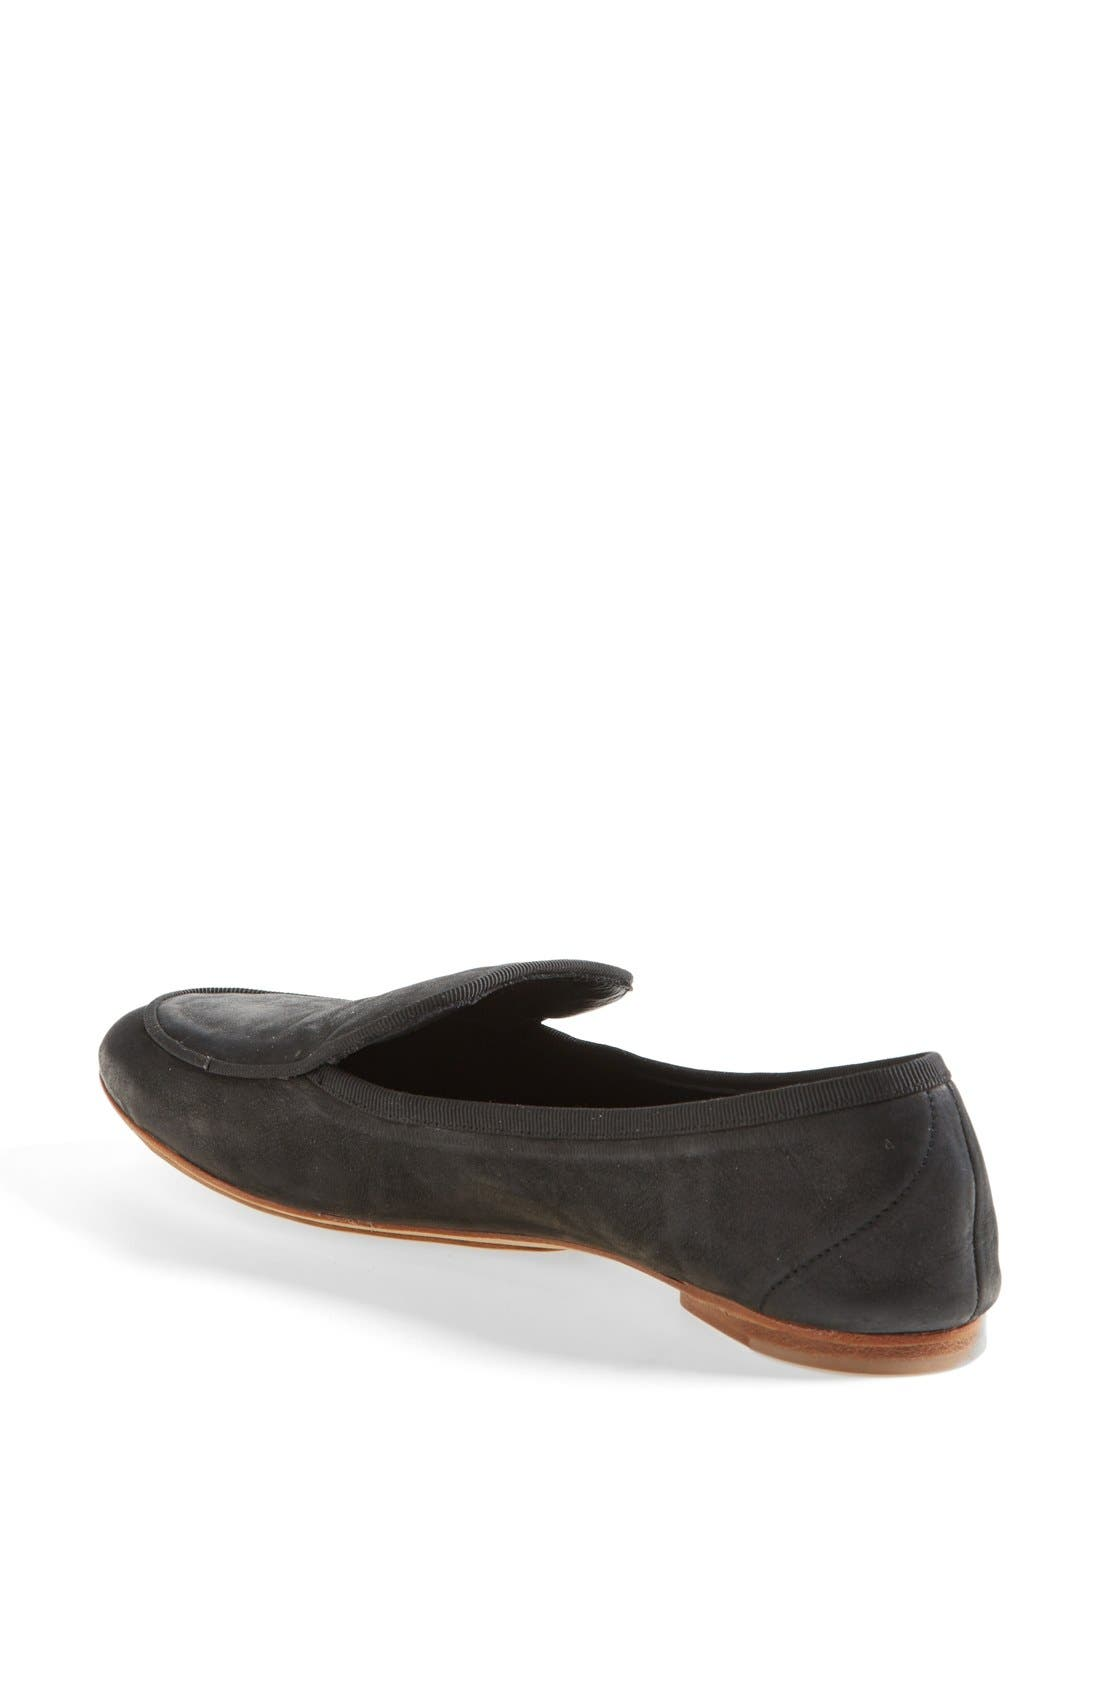 Alternate Image 2  - rag & bone 'Beeman' Loafer Flat